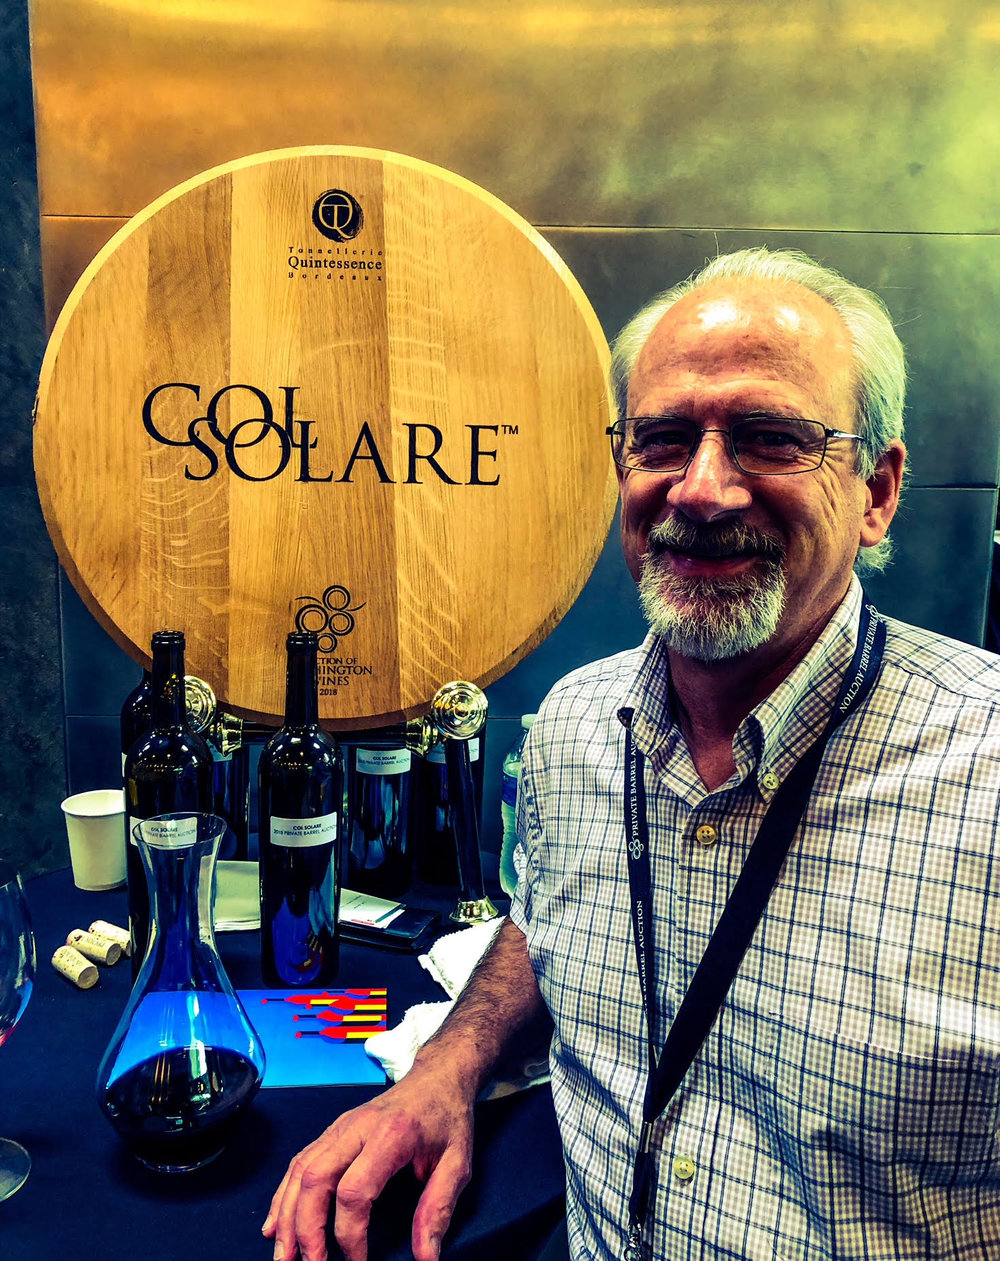 Darel Allwine crafts some stunning wines for Col Solare.